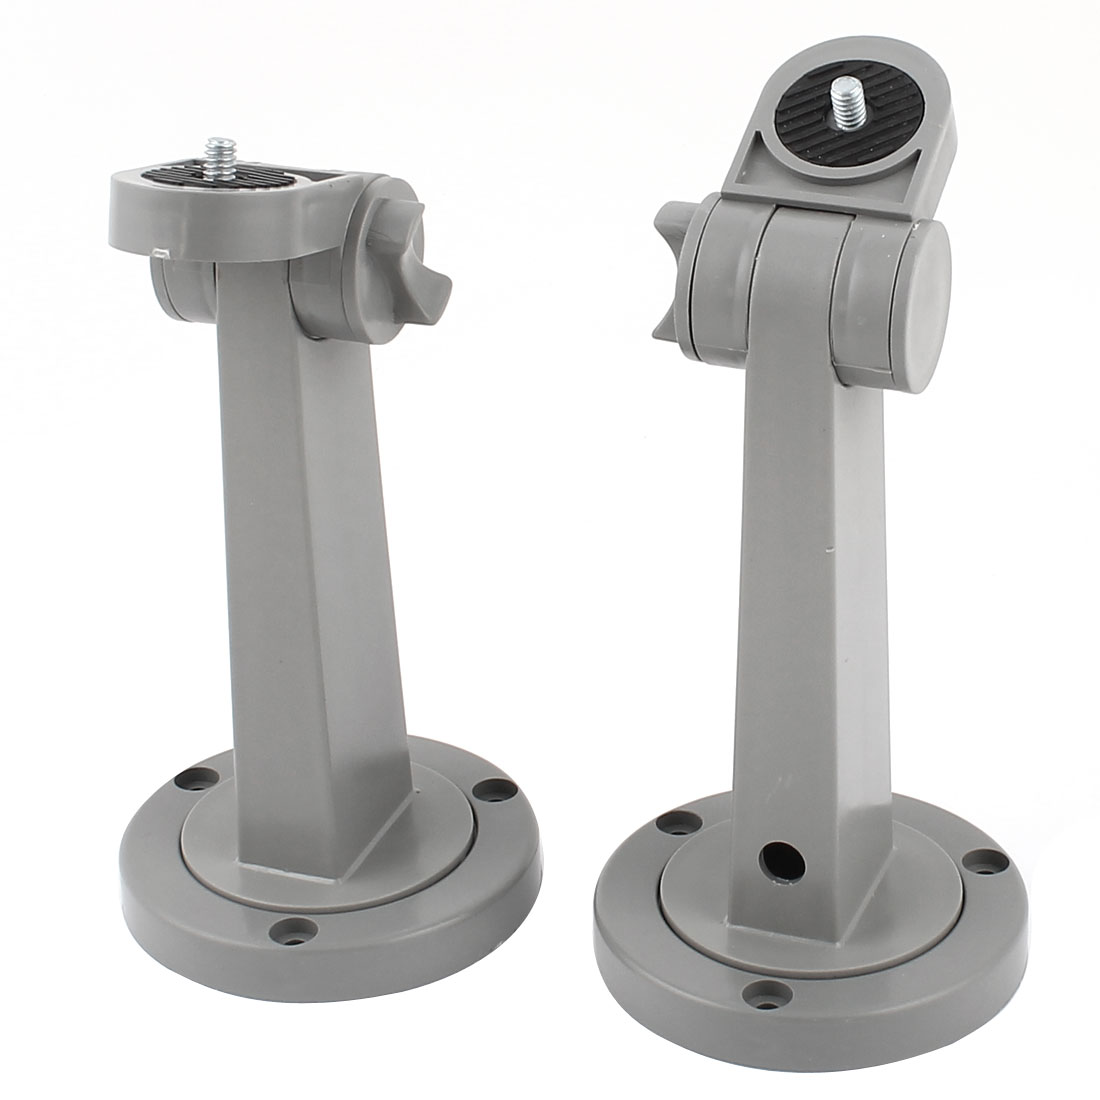 2 Pcs Gray Plastic Round Base Wall Mount Monitor CCTV Camera Bracket